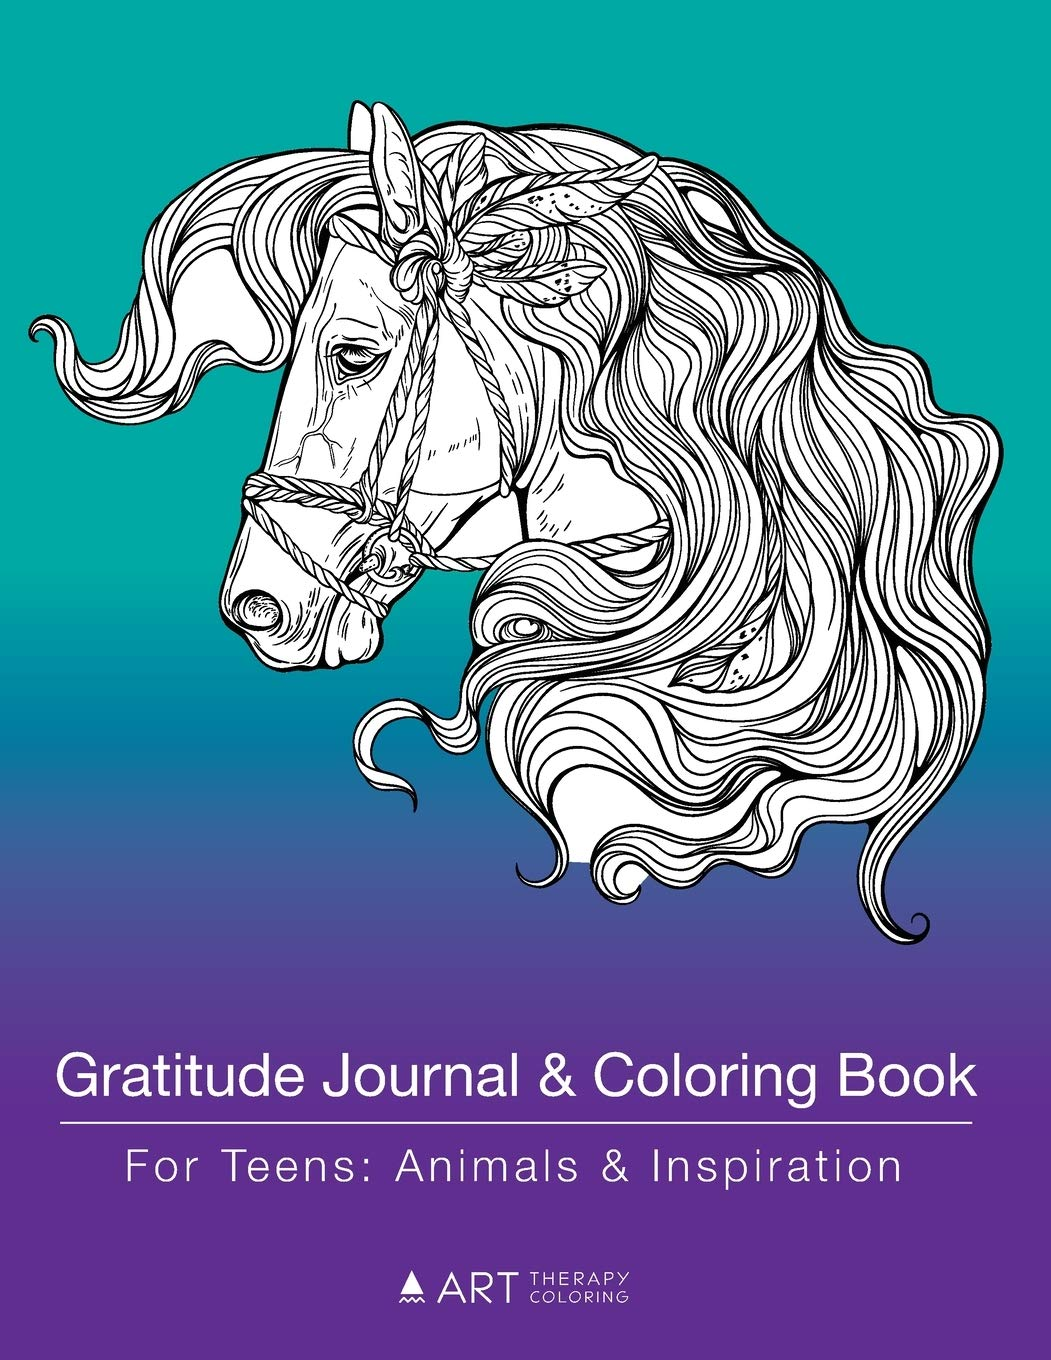 Gratitude Journal And Coloring Book For Teens  Animals And Inspiration  Detailed Animal Designs For Teenagers Tweens Young Adults Boys Girls Journaling Practice For Personal Growth And Mindfulness